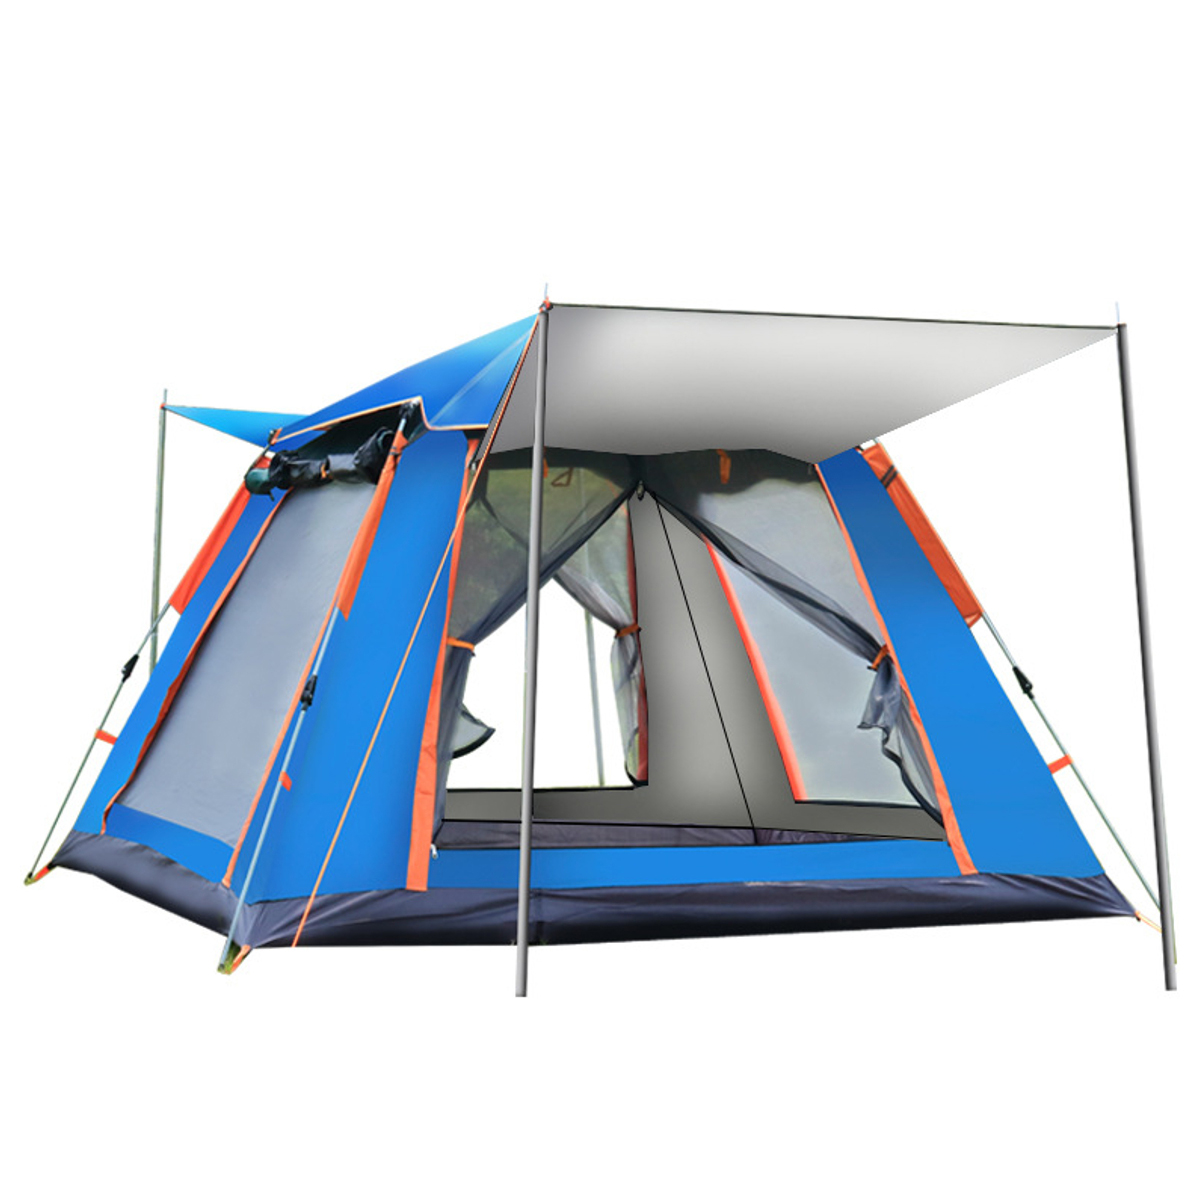 4-5 People Fully Automatic Set-Up Tent UV Protected Family Picnic Travel Sun Shelters Outdoor Rainproof Windproof Camping Tents